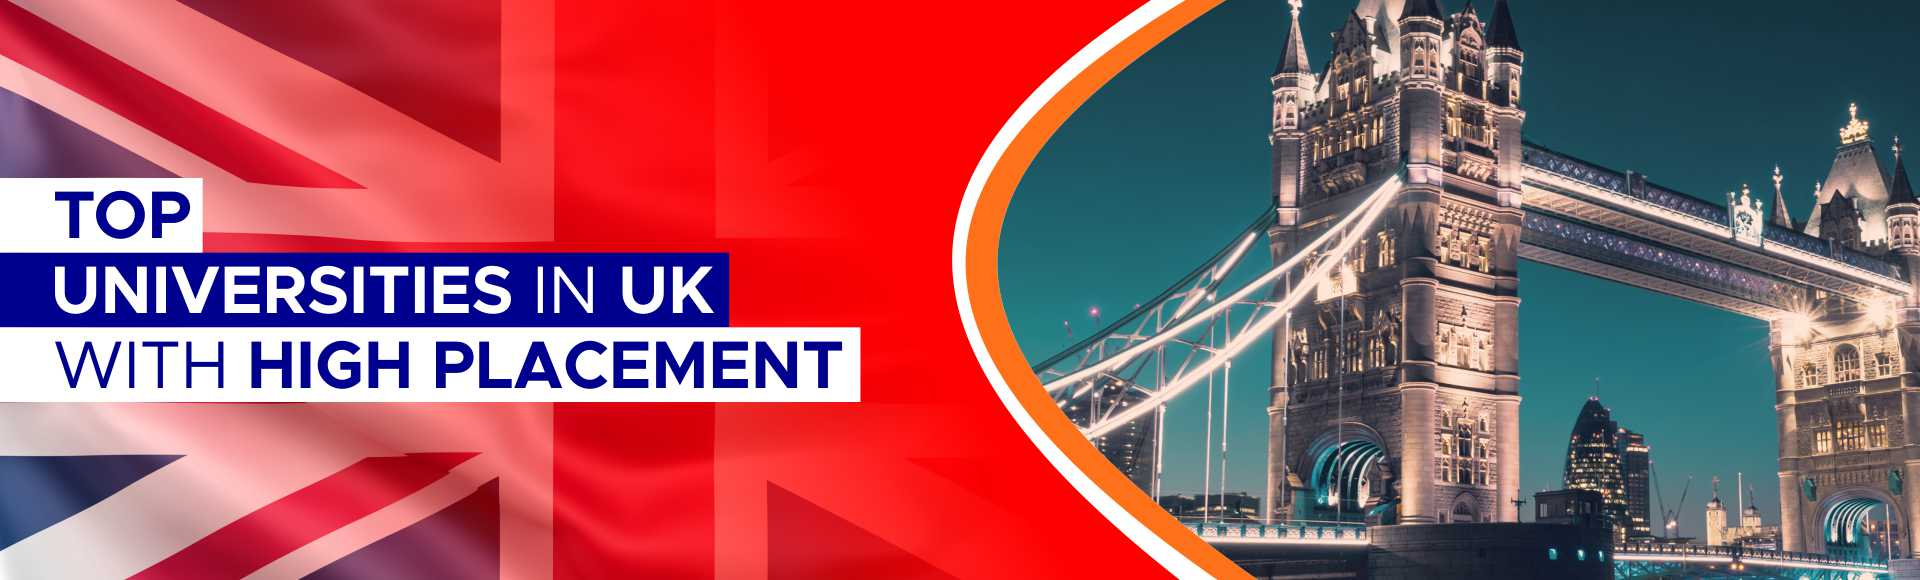 Top Universities in UK with High Placement